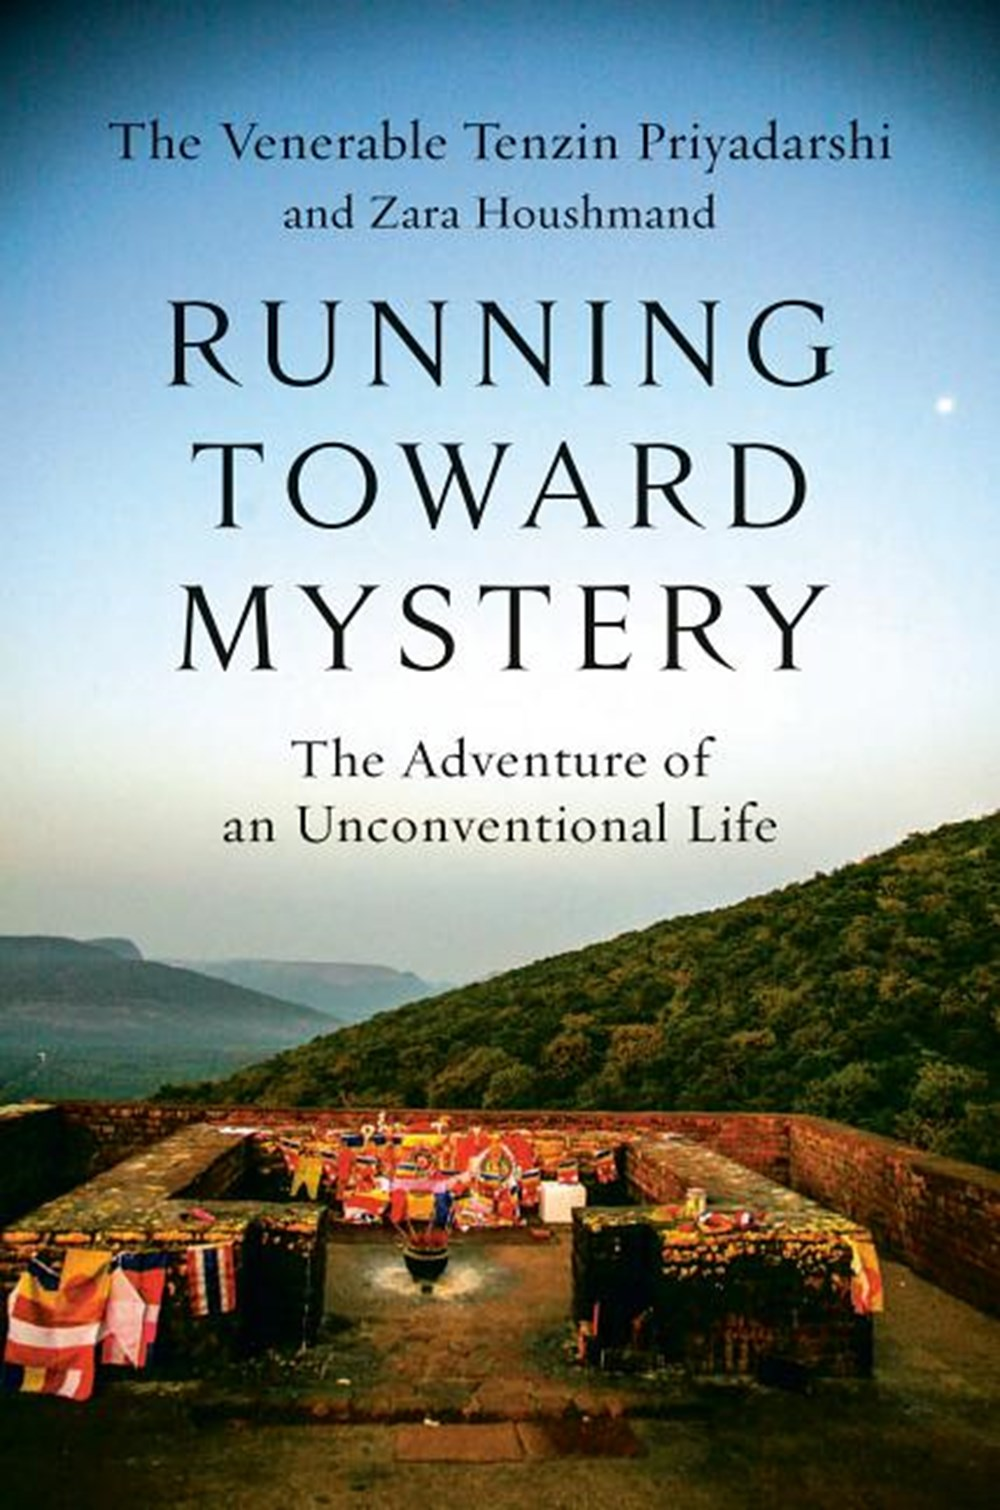 Running Toward Mystery The Adventure of an Unconventional Life